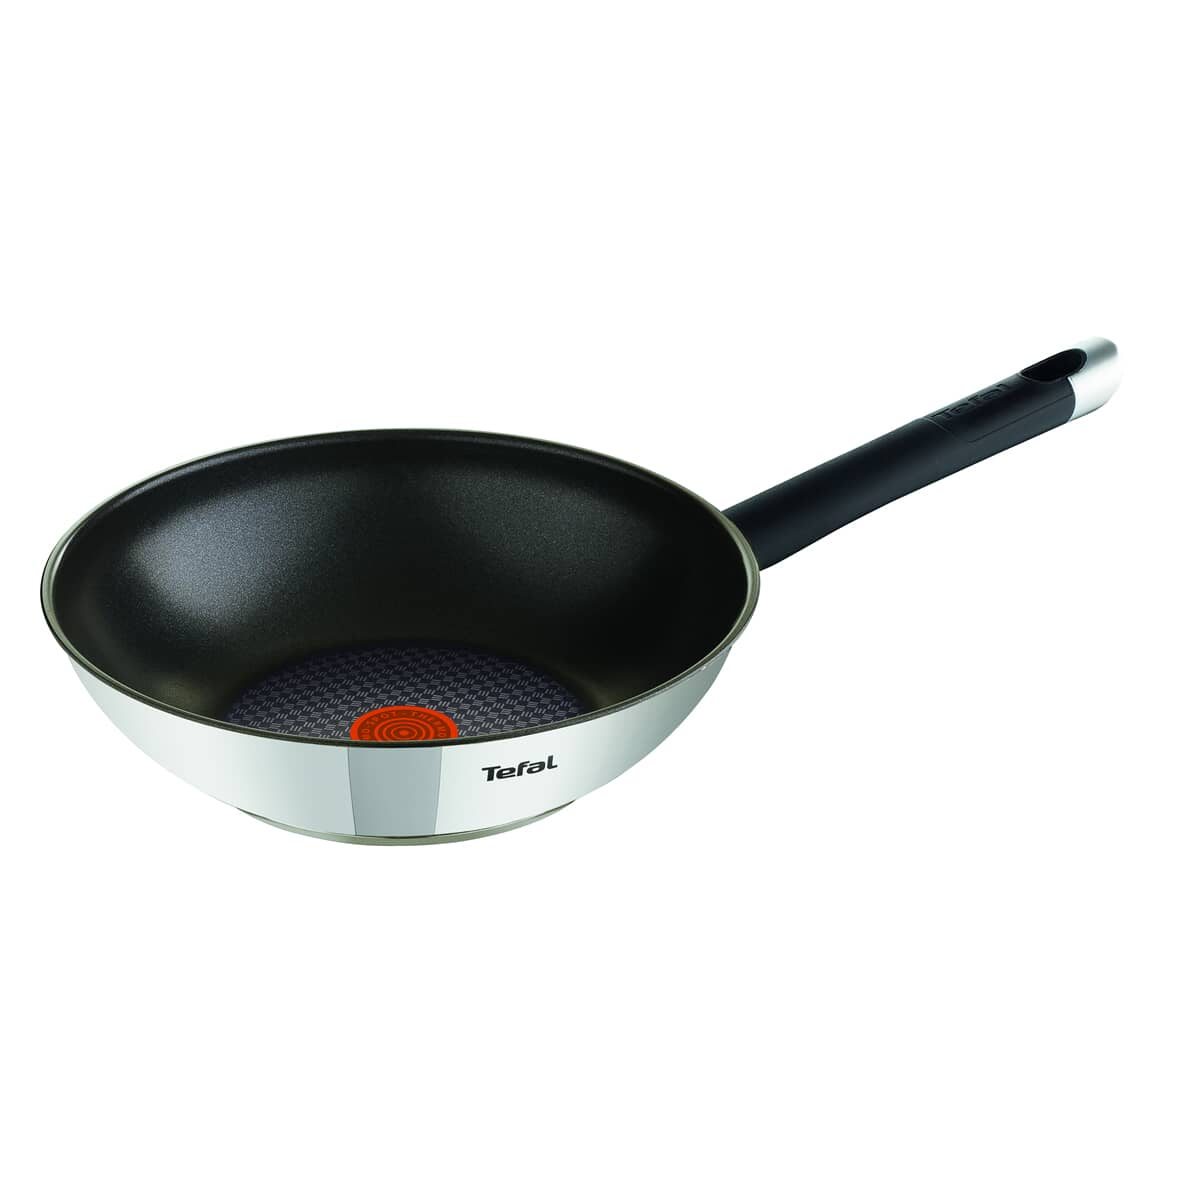 Tefal Emotion 28cm Stirfry Pan E8241944 Ecookshop